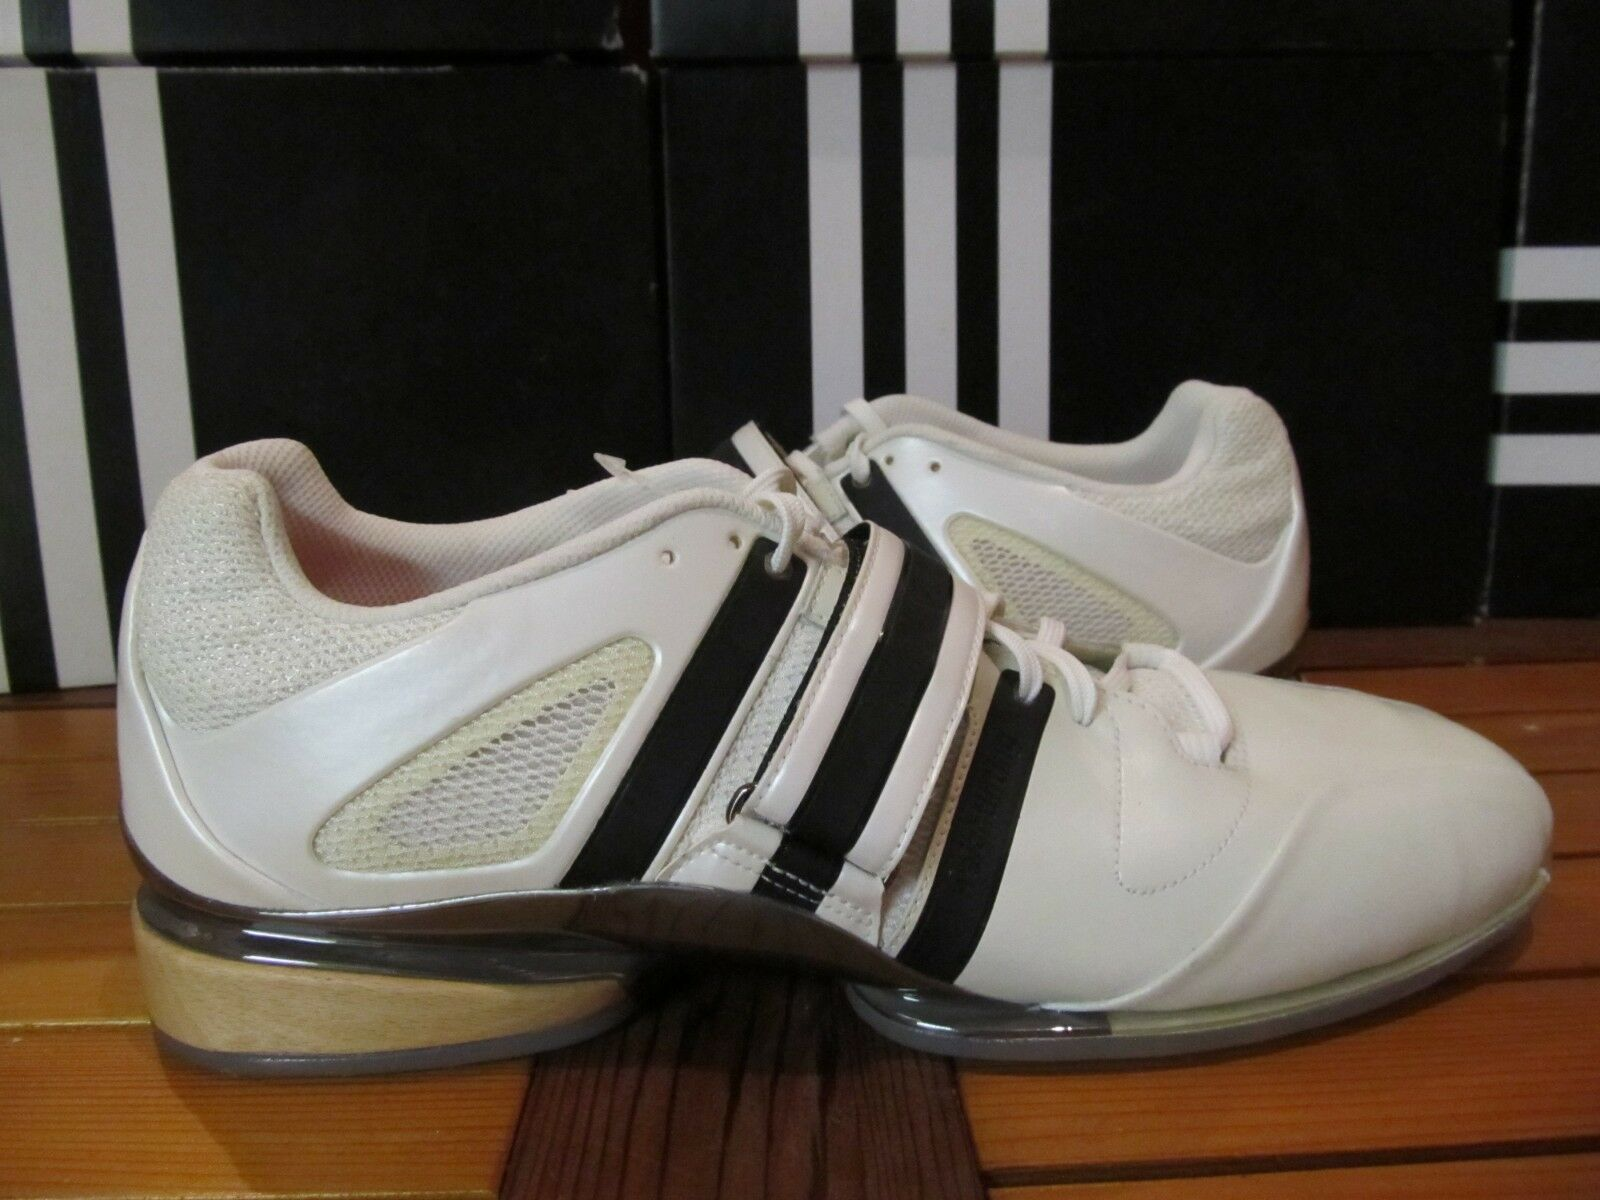 NEW Adidas AdiStar Weightlift 2008 Olympic Weightlifting shoes 14 561107 adipower